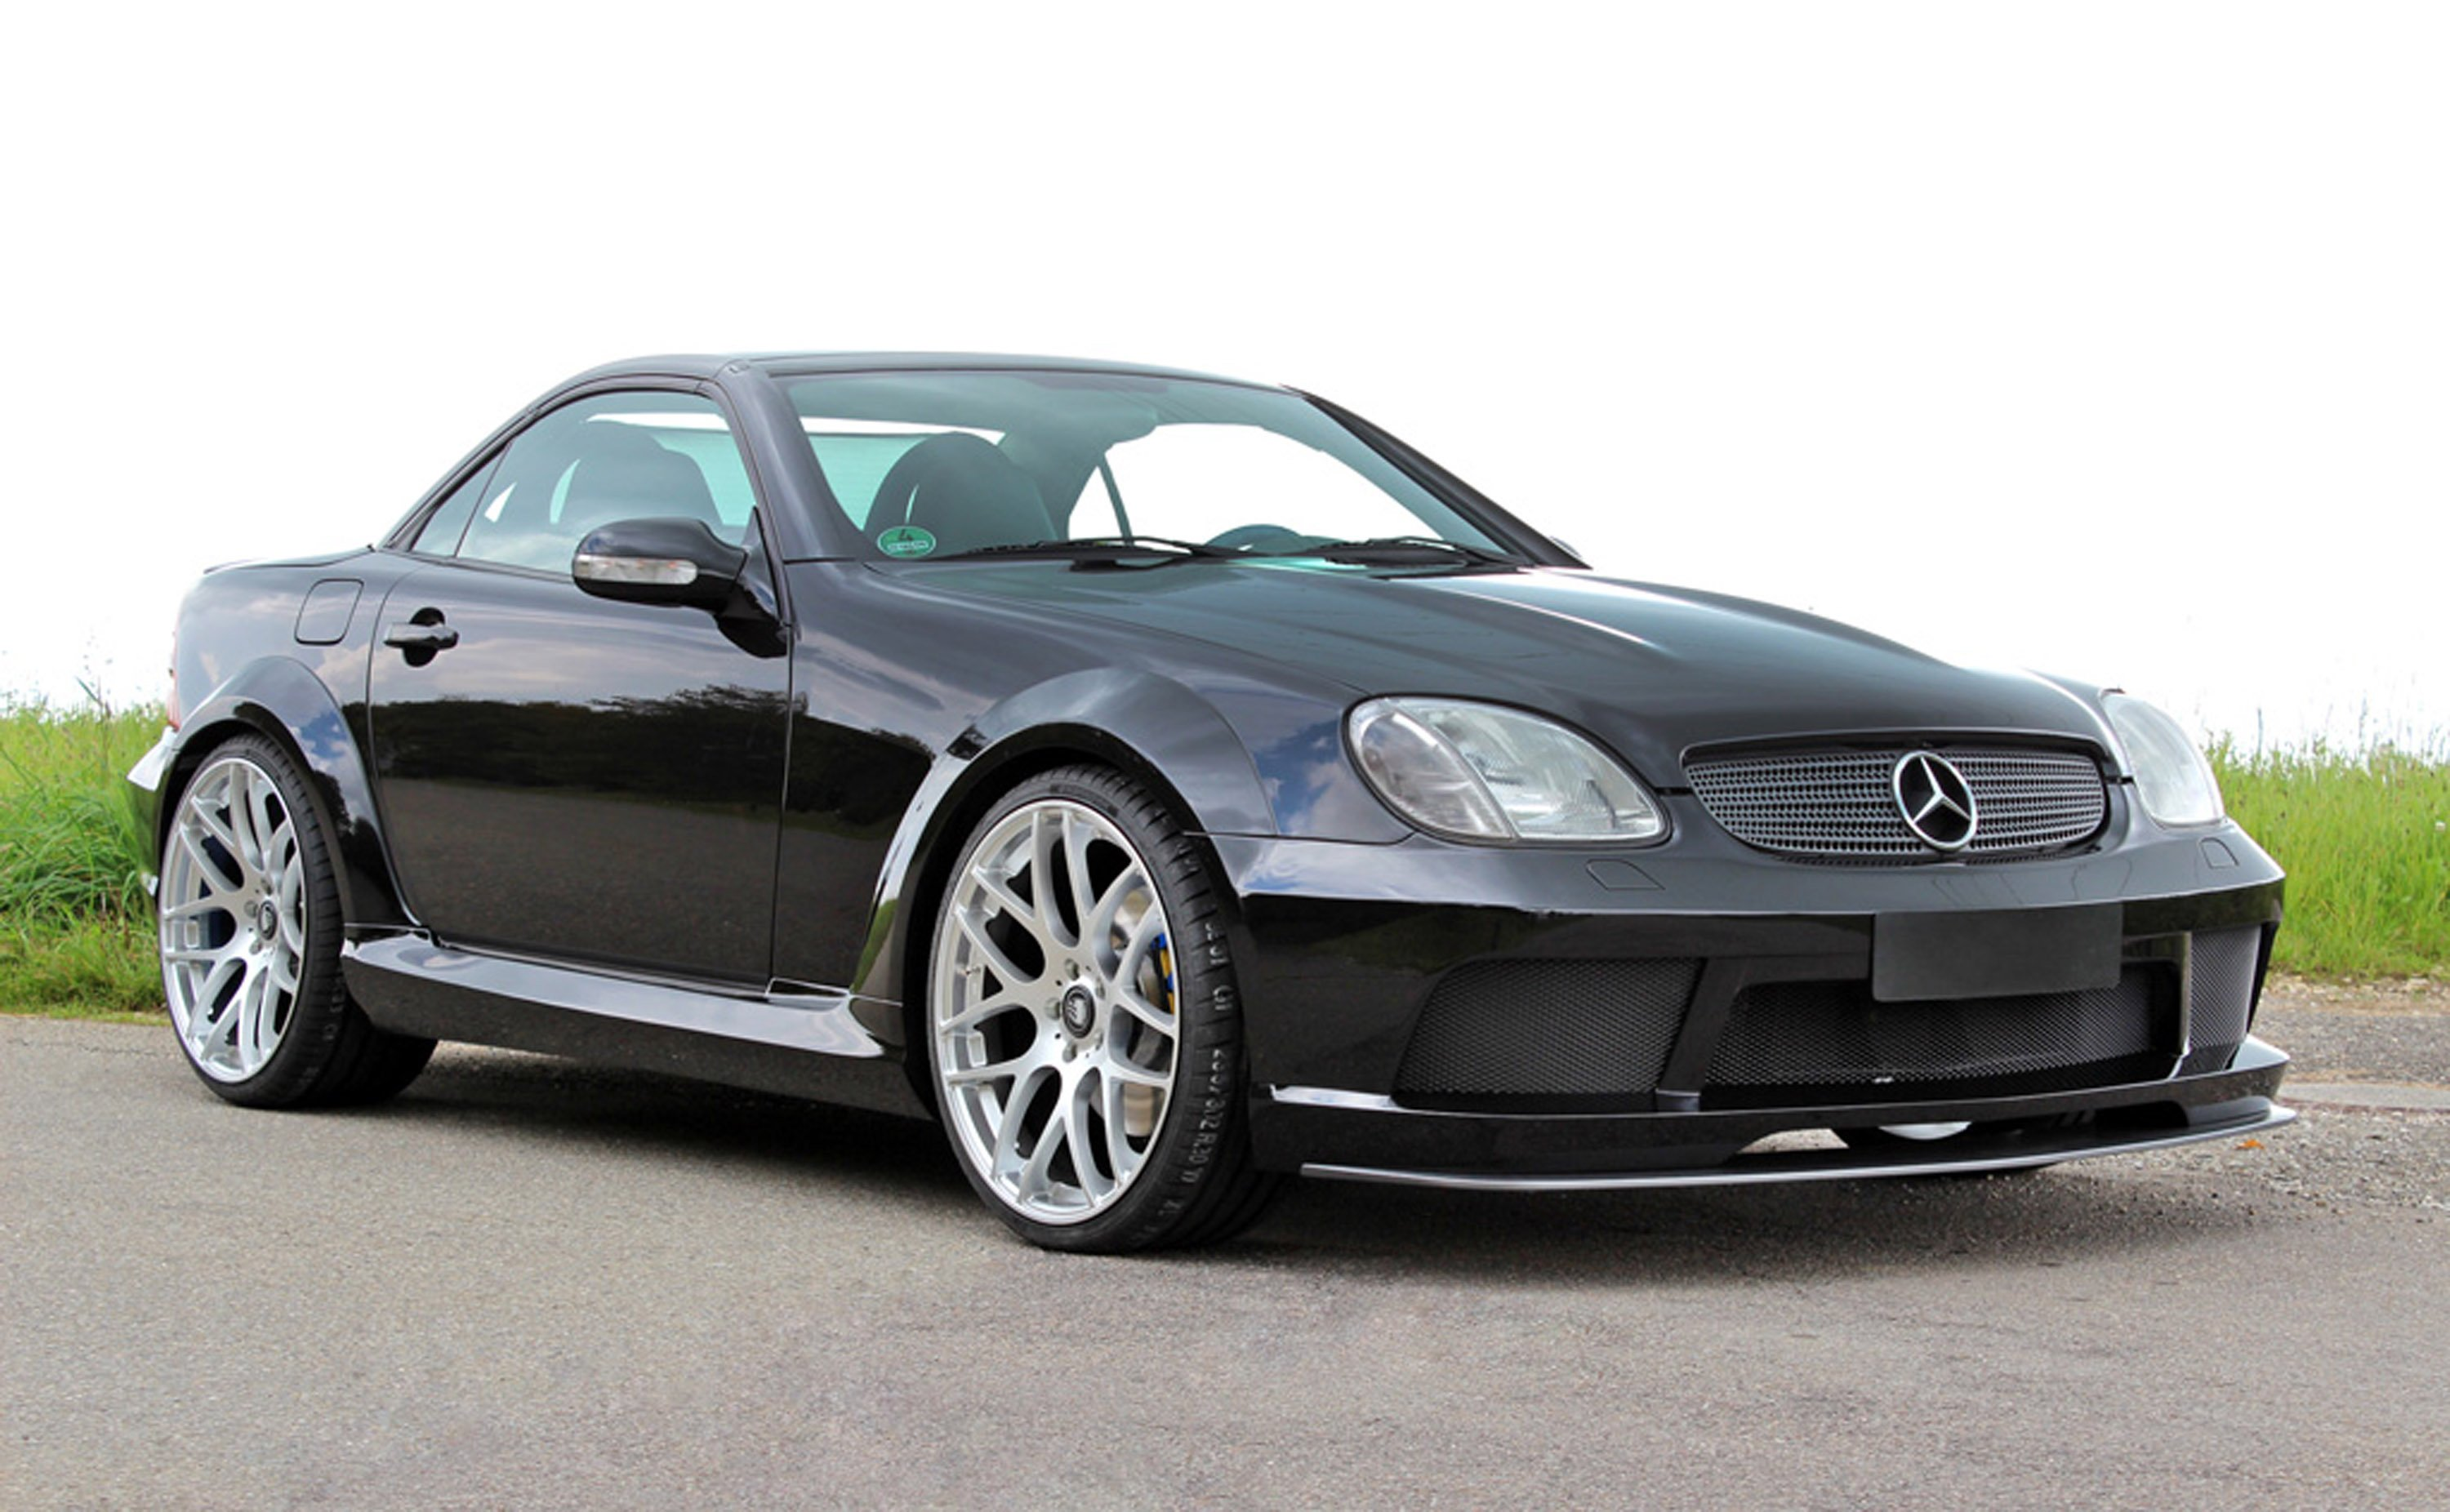 lumma tuning mercedes slk r170 wallpaper 3000x1852 453569 wallpaperup. Black Bedroom Furniture Sets. Home Design Ideas